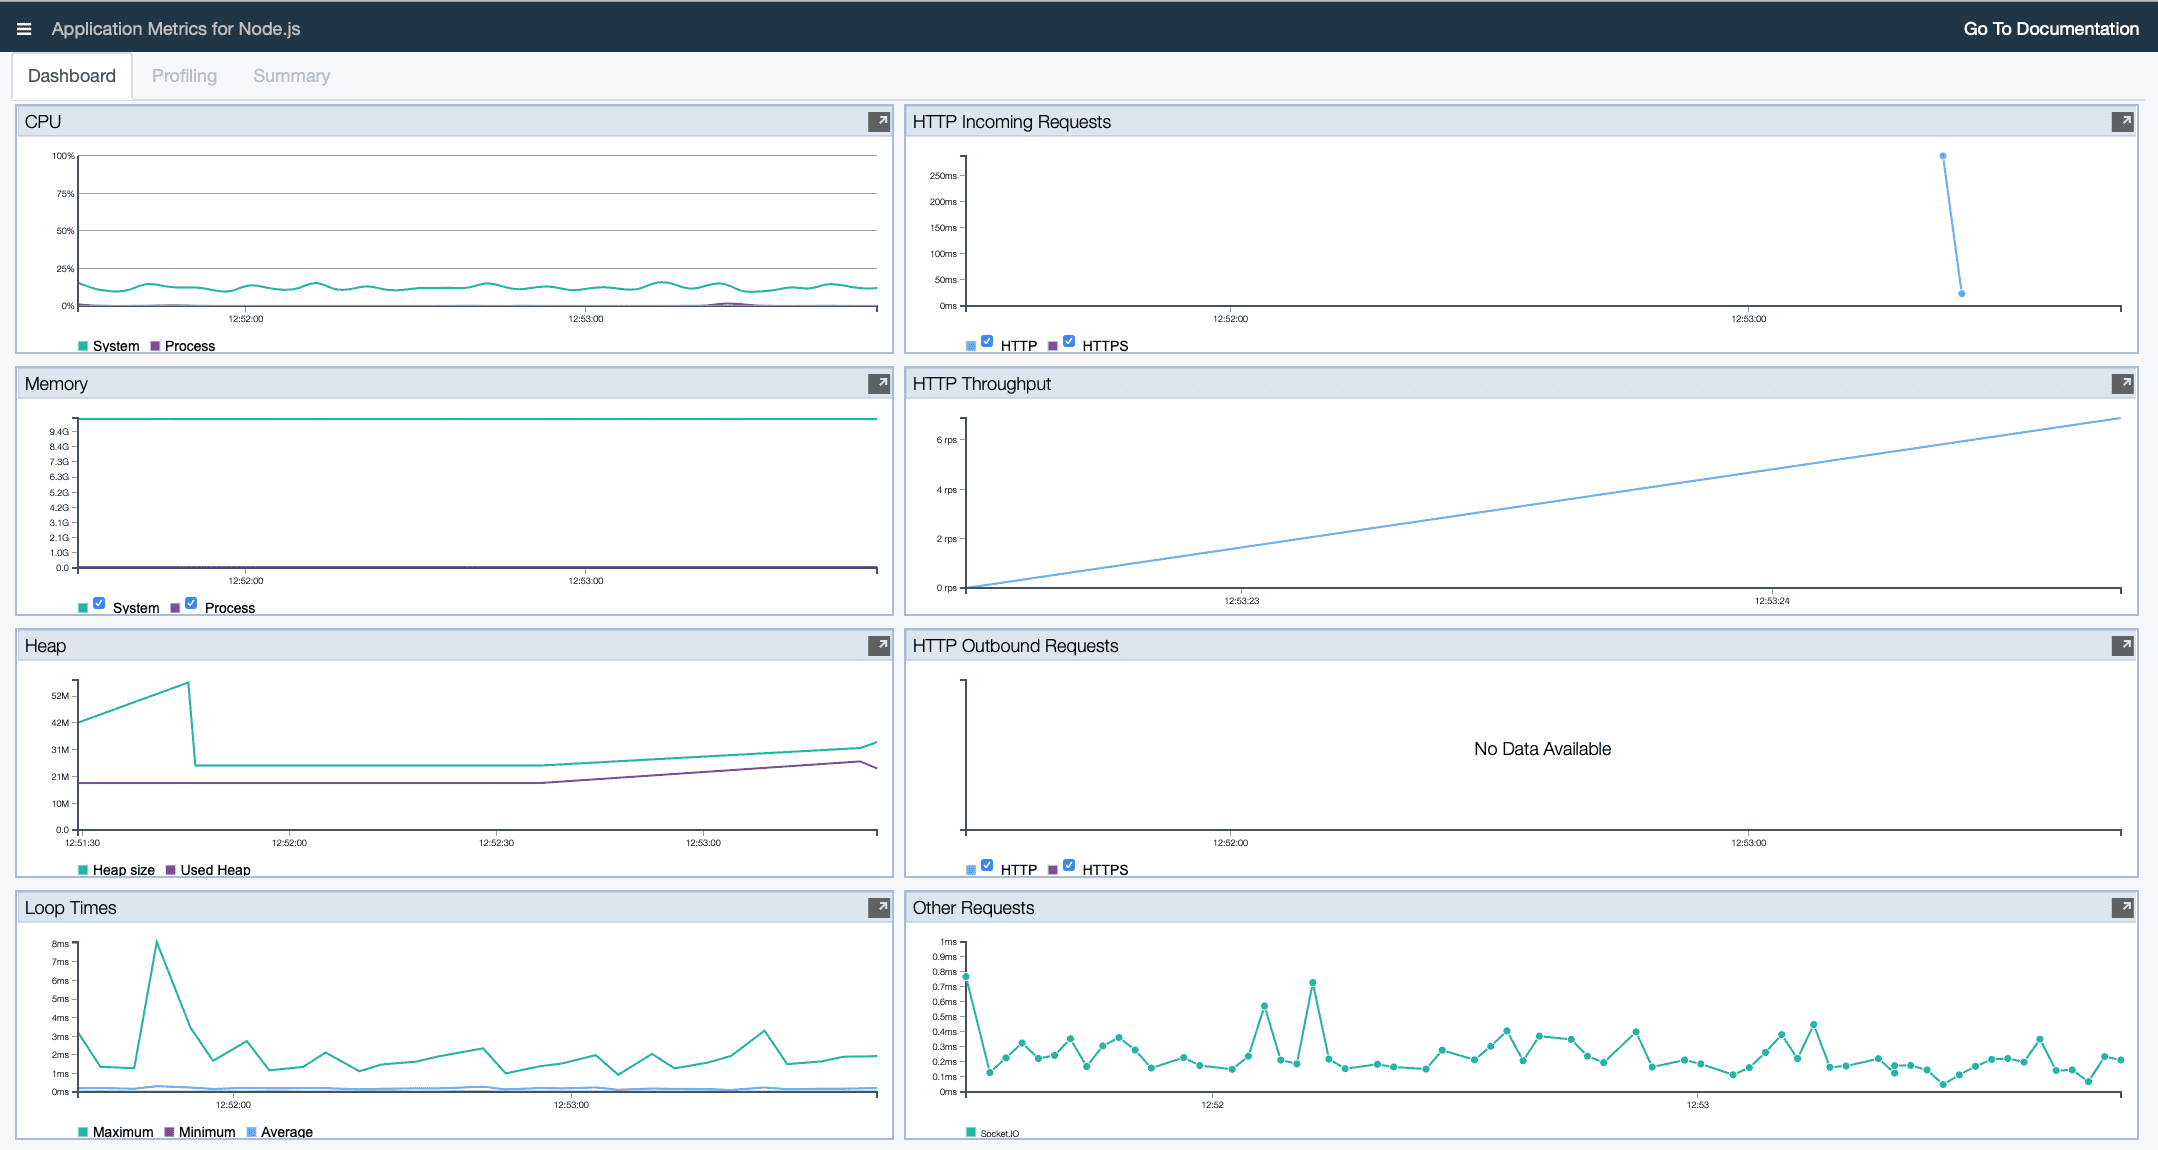 Performance Monitoring and Analysis Dashboard